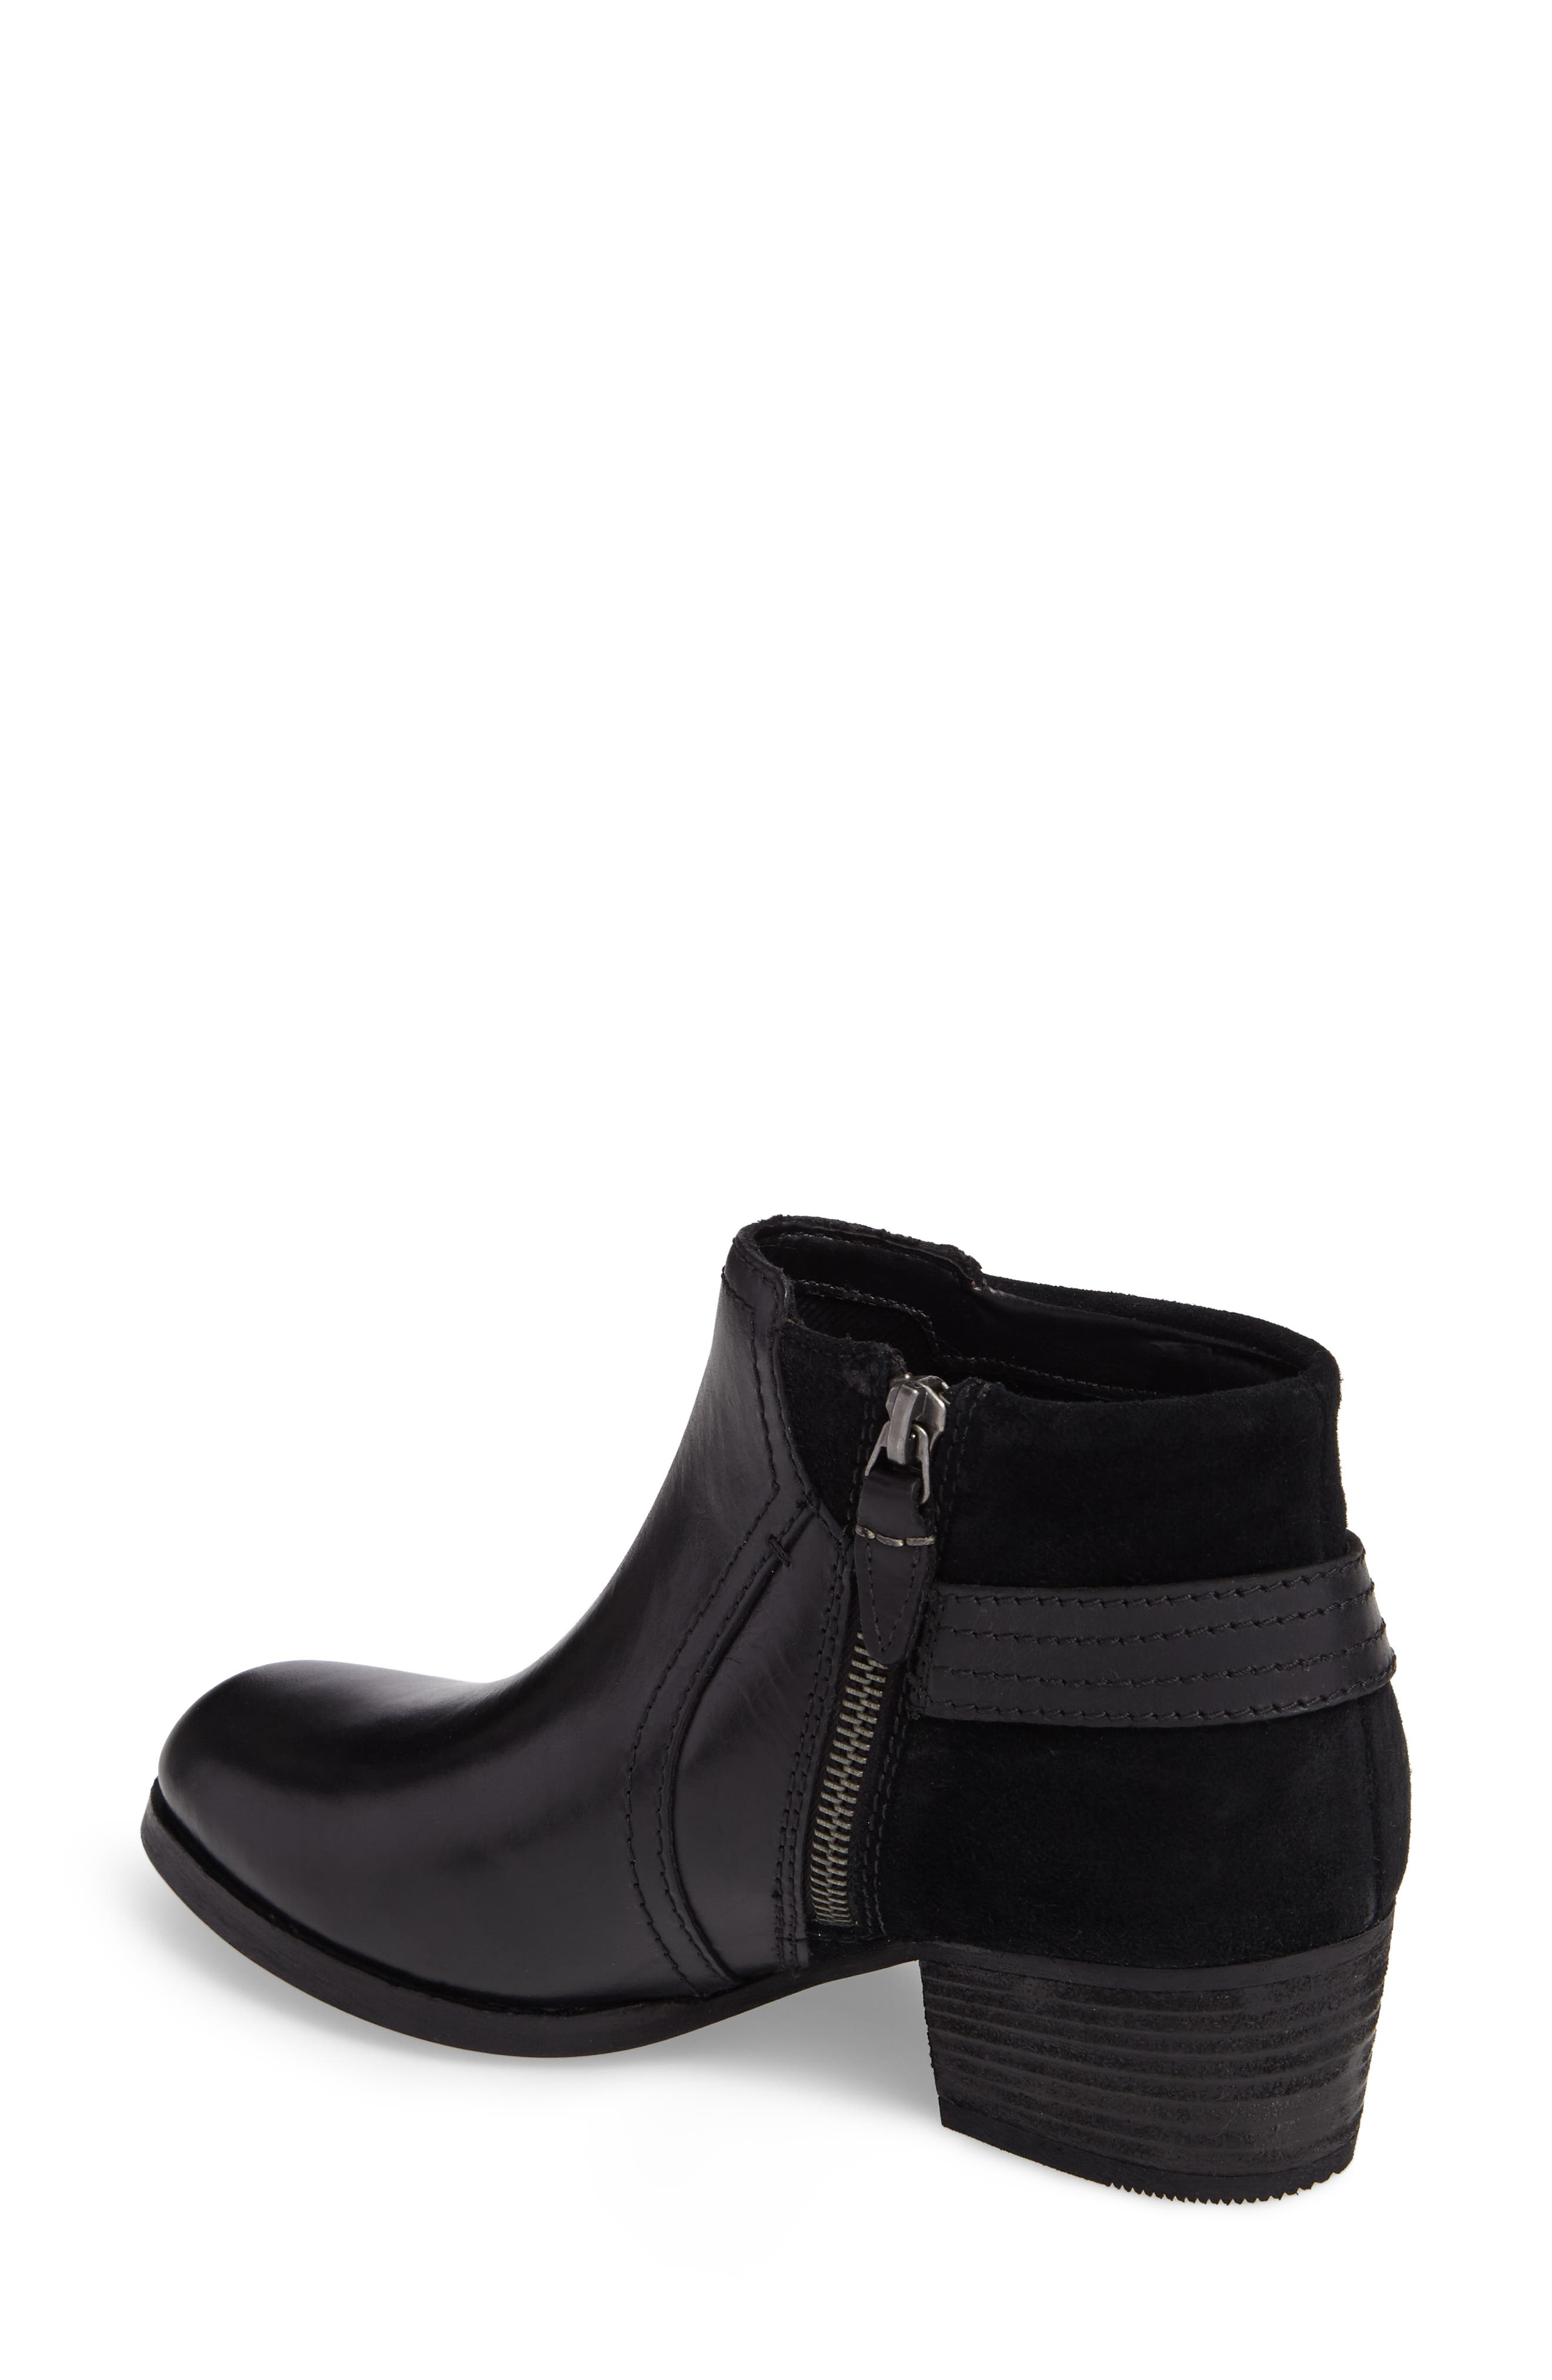 Maypearl Lilac Bootie,                             Alternate thumbnail 2, color,                             Black Leather